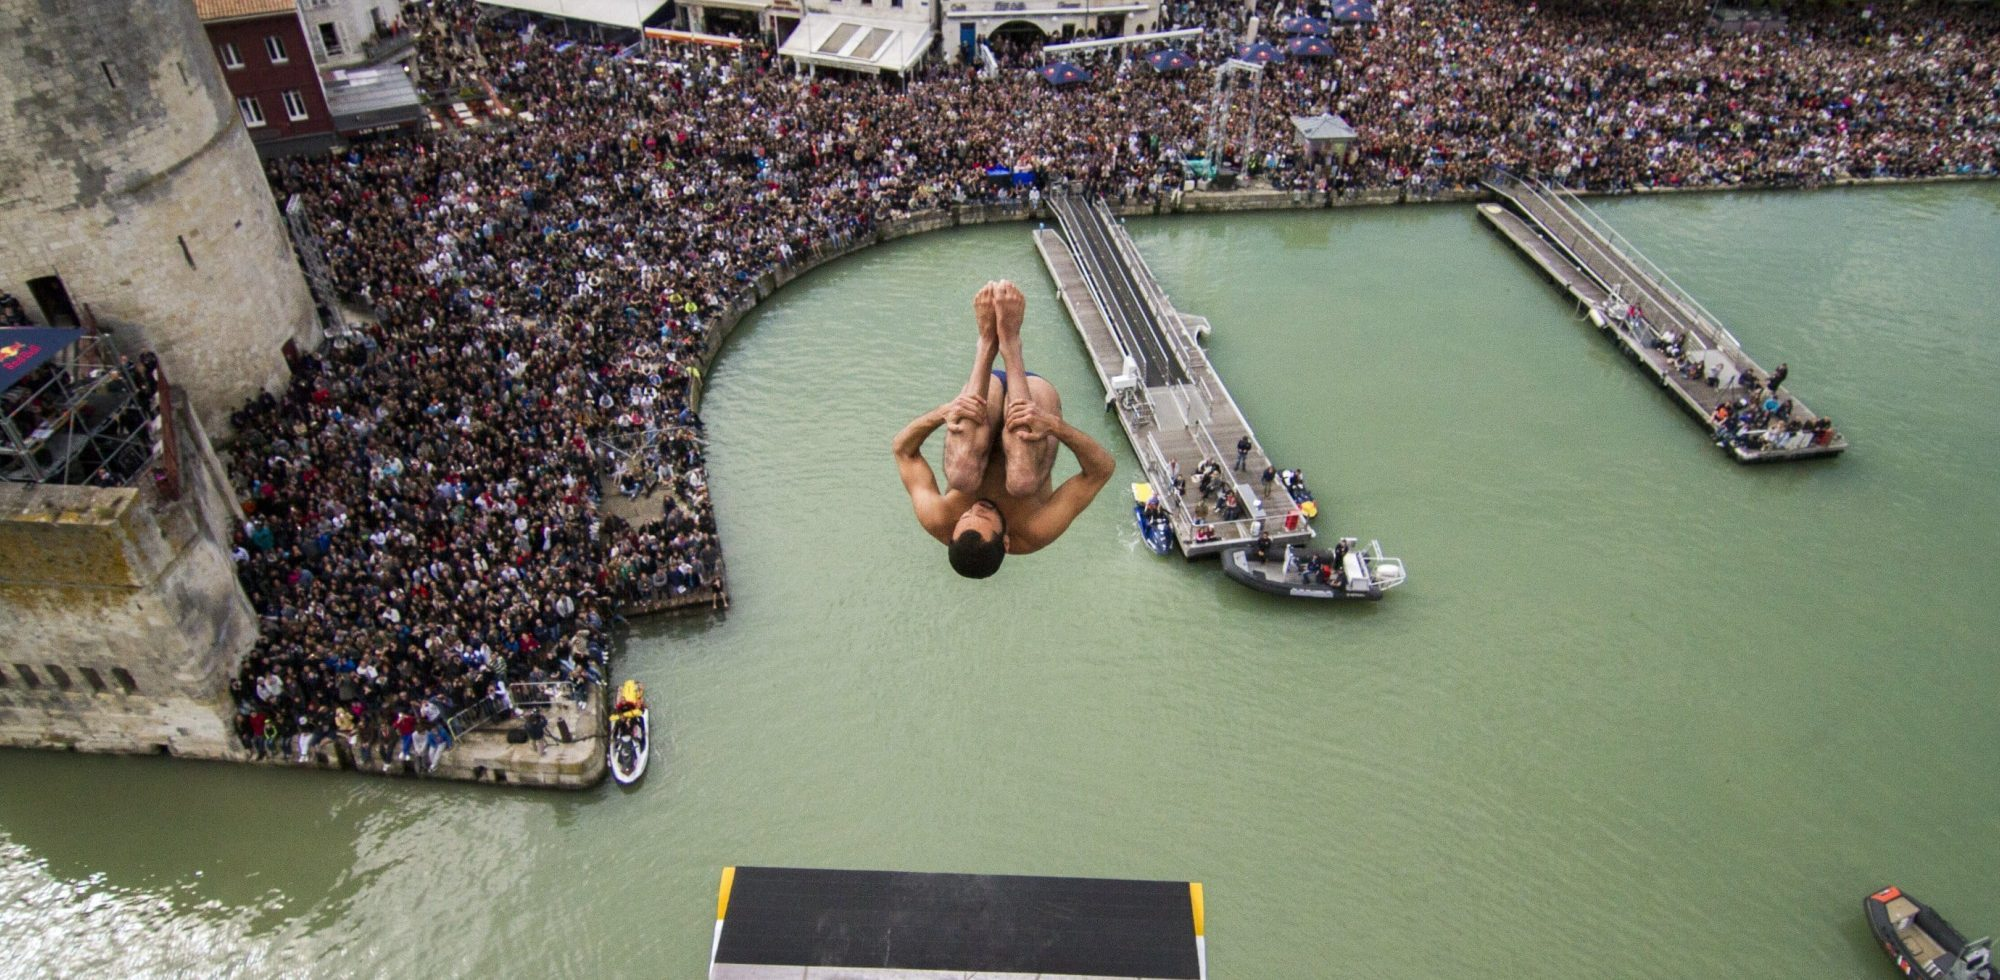 Hassan Mouti Red Bull Cliff Diving